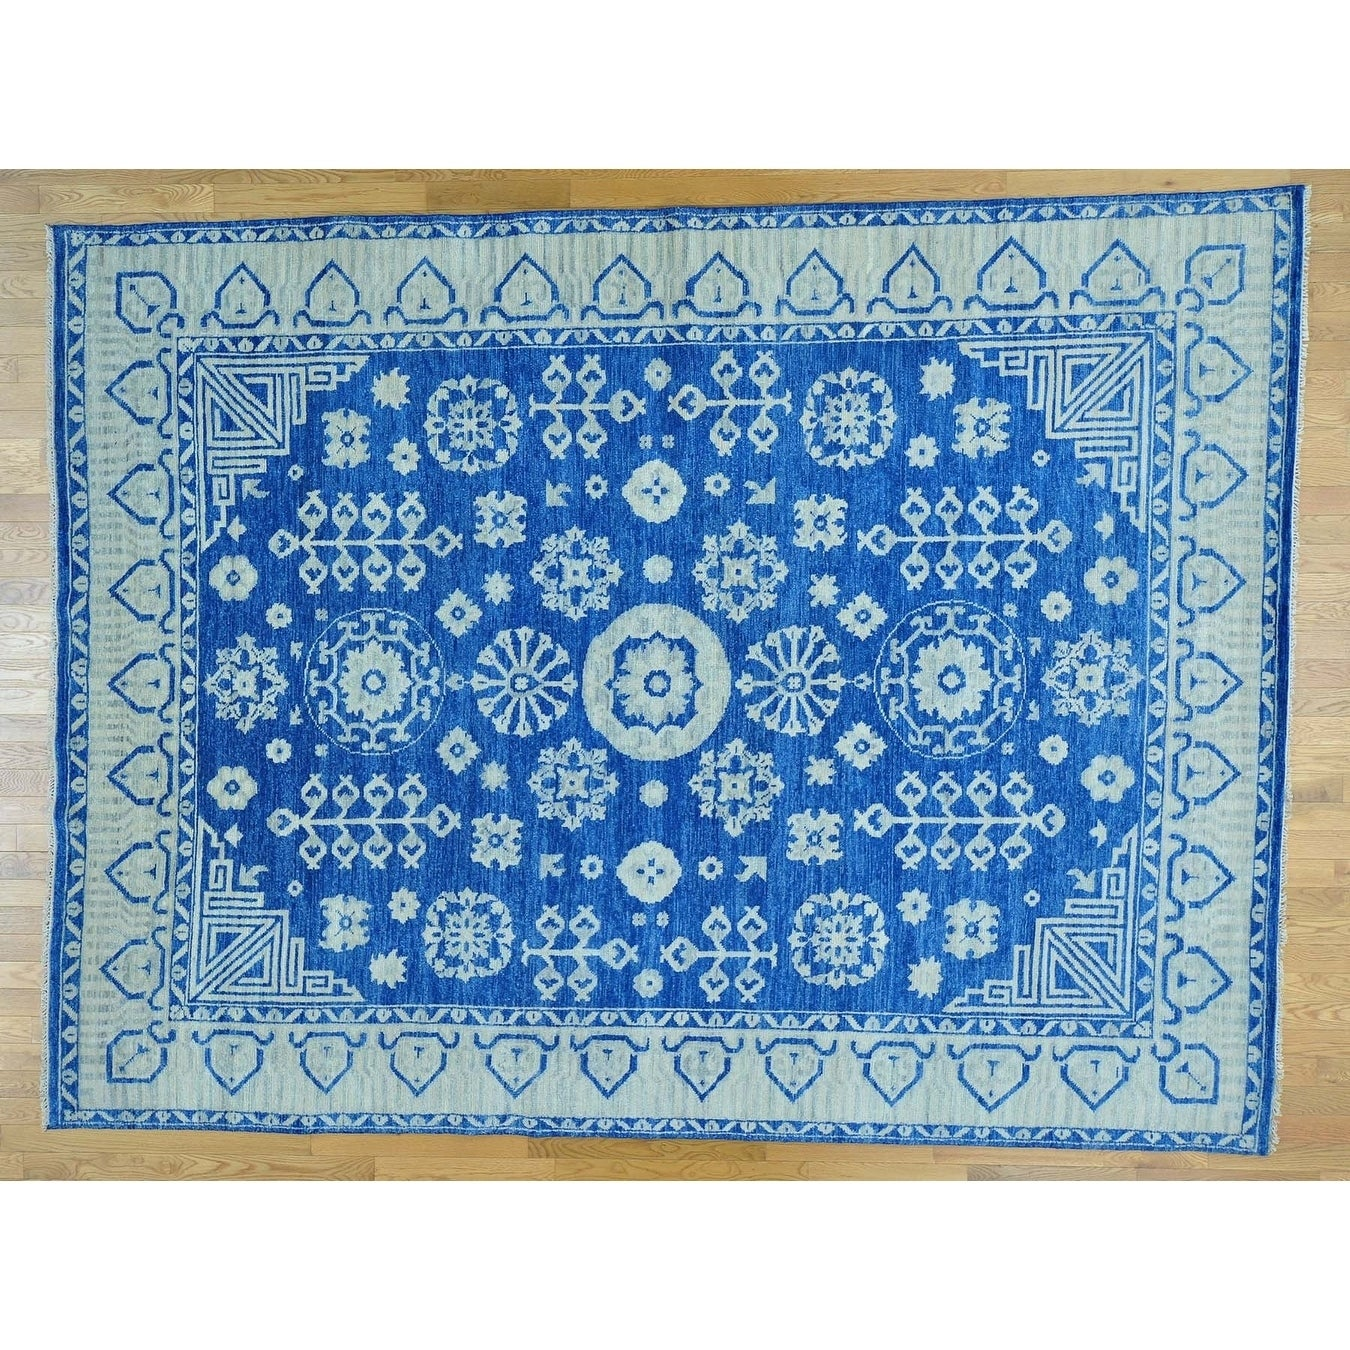 Hand Knotted Blue Khotan and Samarkand with Wool Oriental Rug - 91 x 12